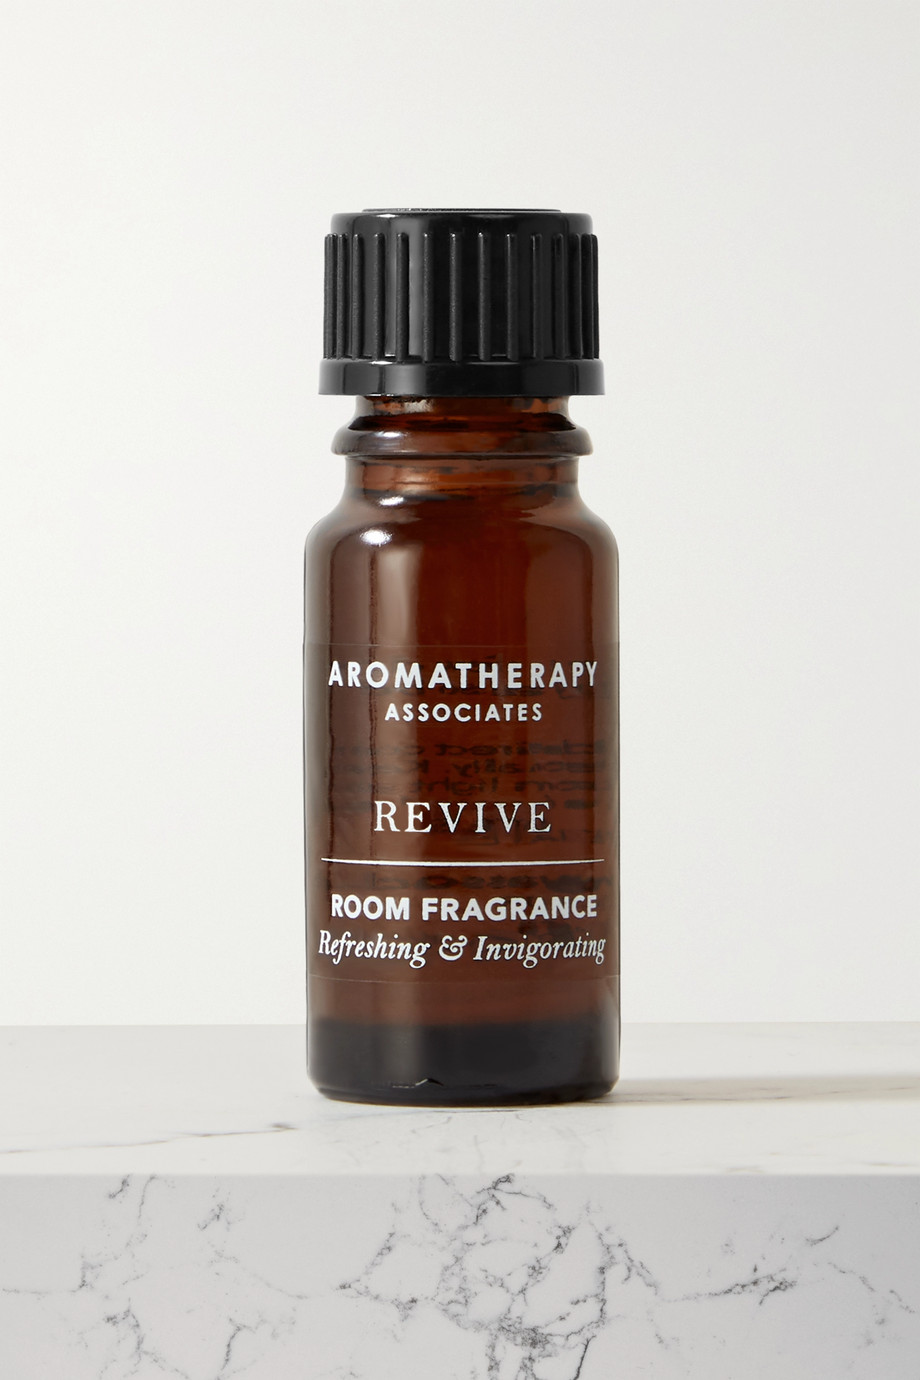 Aromatherapy Associates Revive Room Fragrance, 10ml